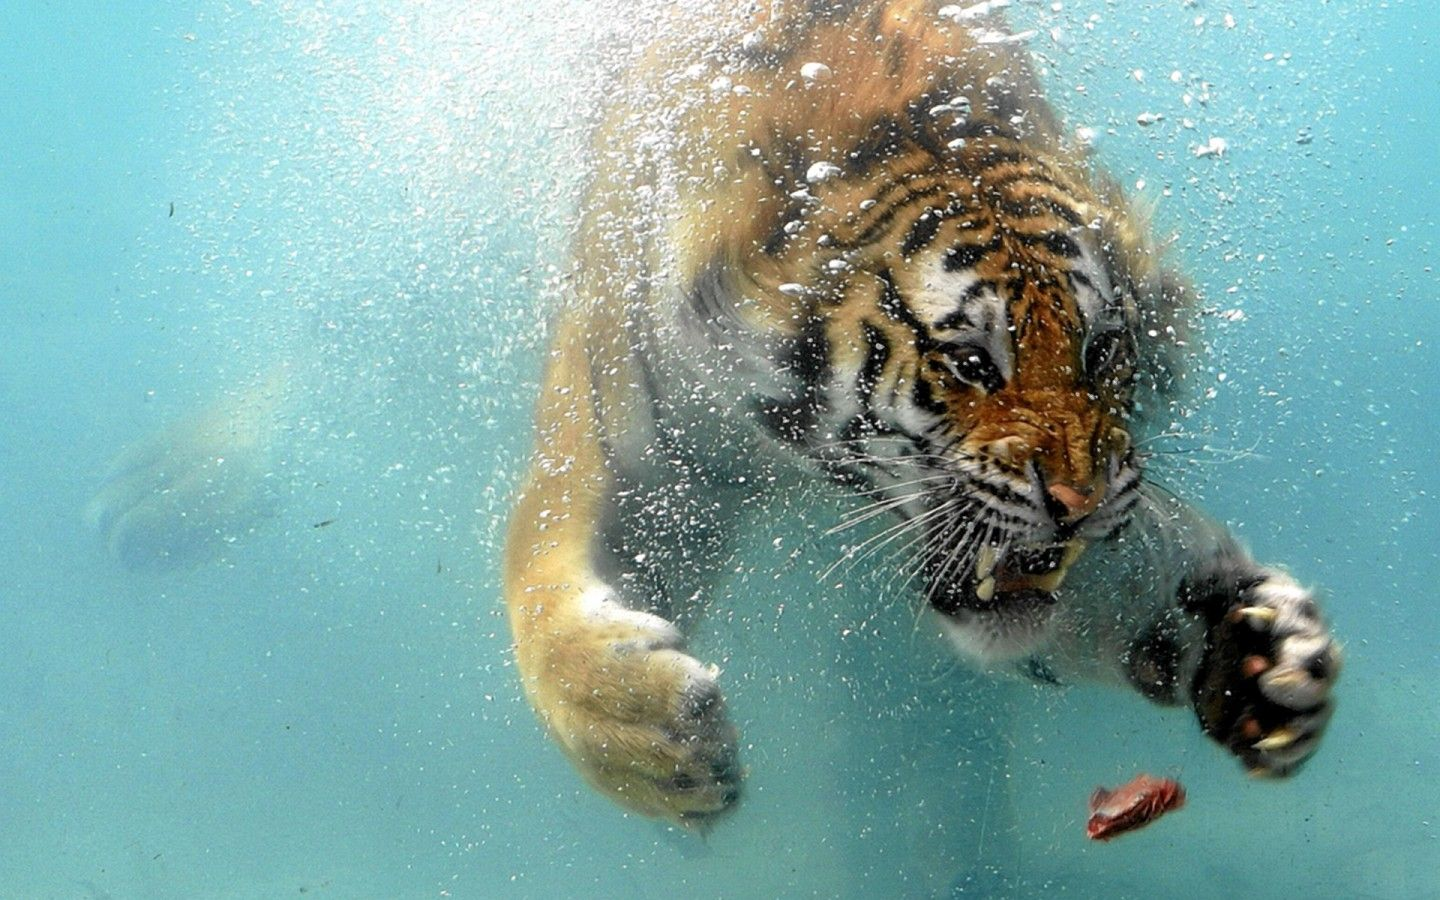 Tiger Attack Images Widescreen 2 Hd Wallpapers So Cute Youll